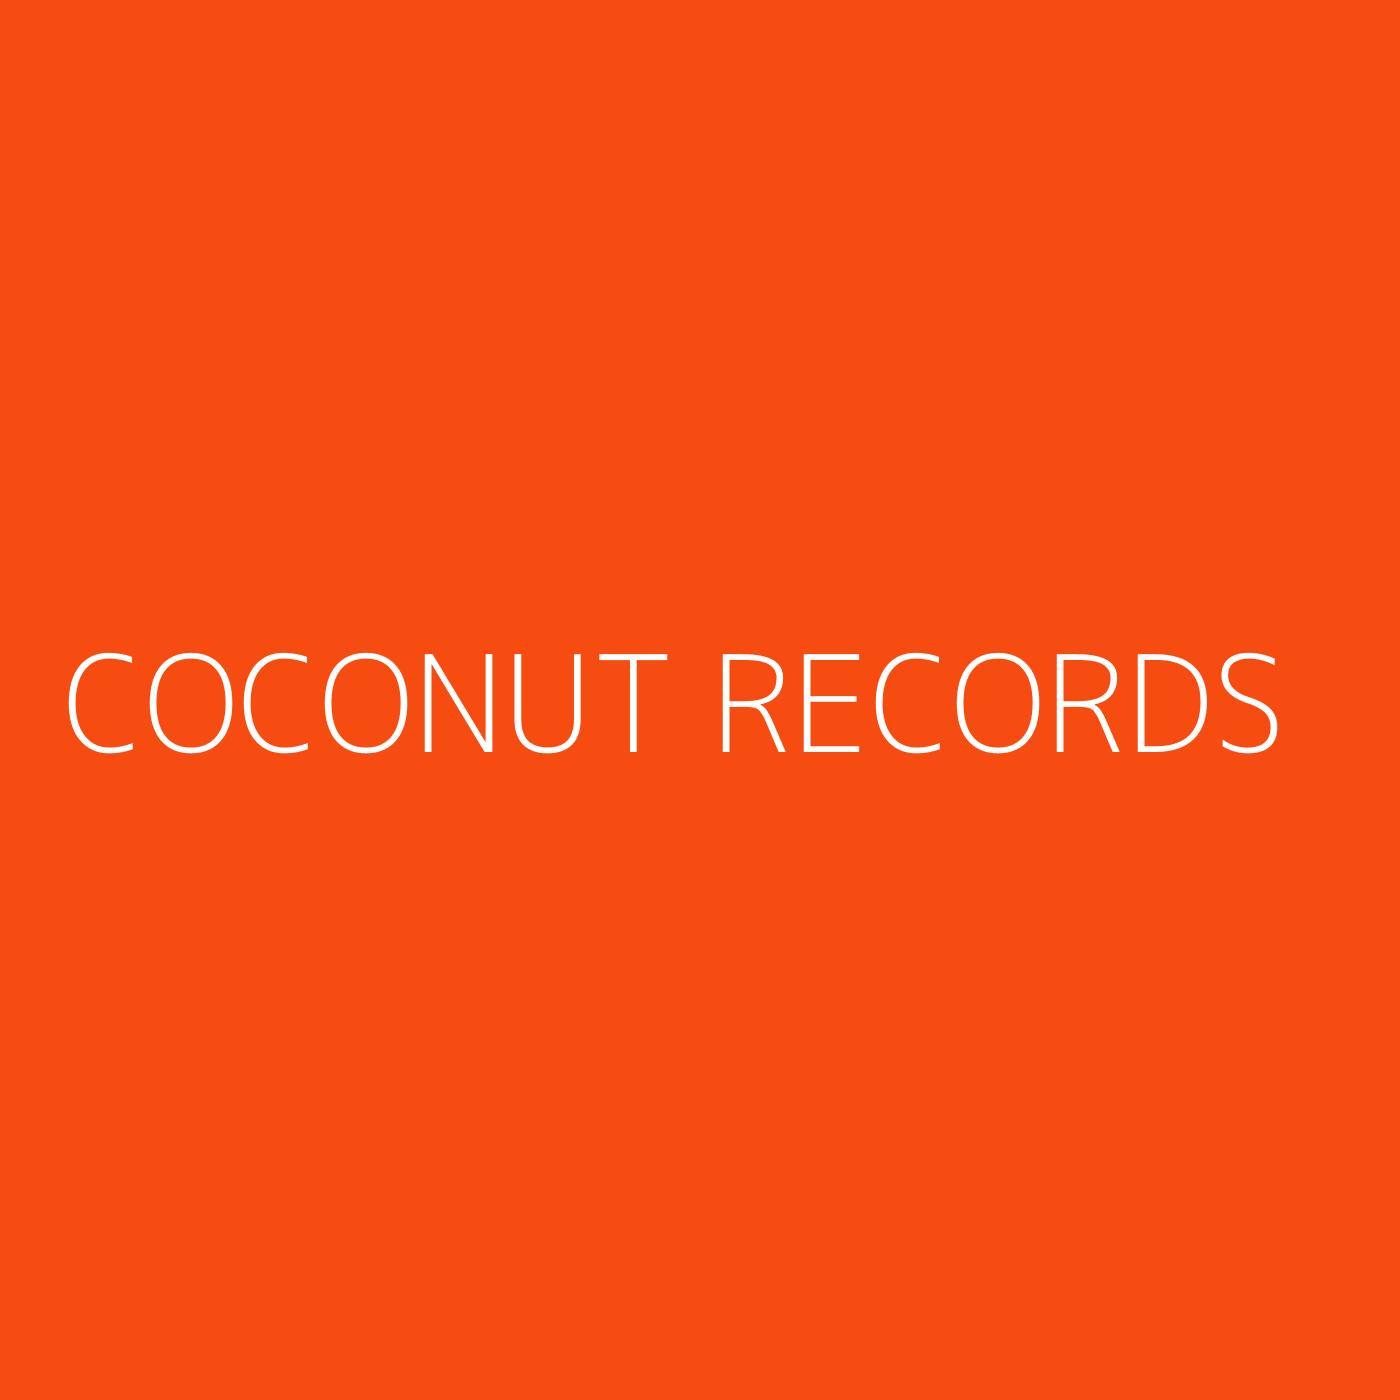 Coconut Records Playlist Artwork